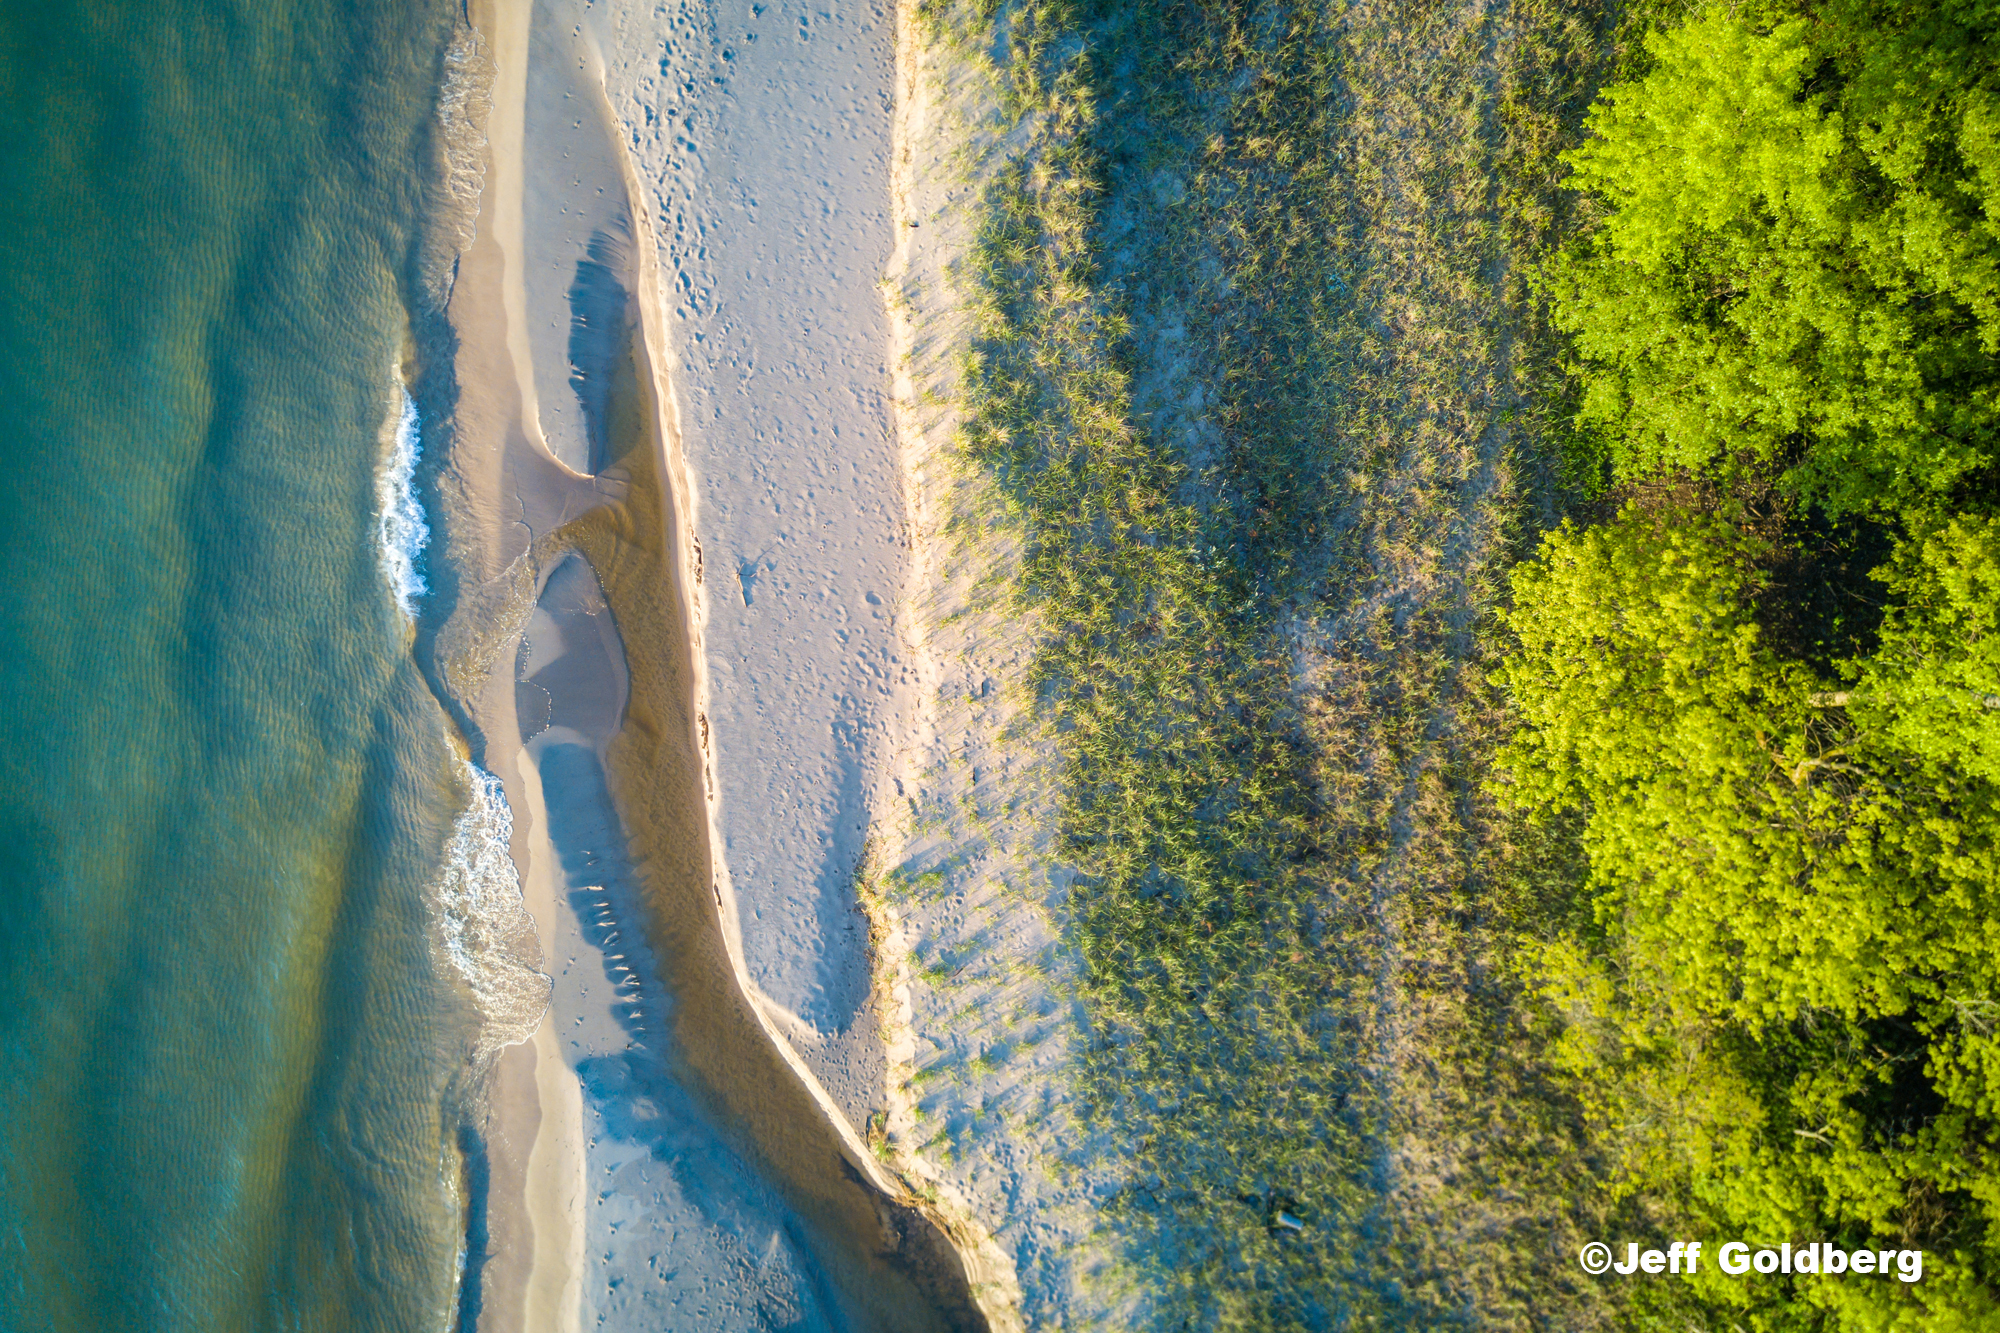 An aerial shot of sand bars on the shores of Lake Michigan